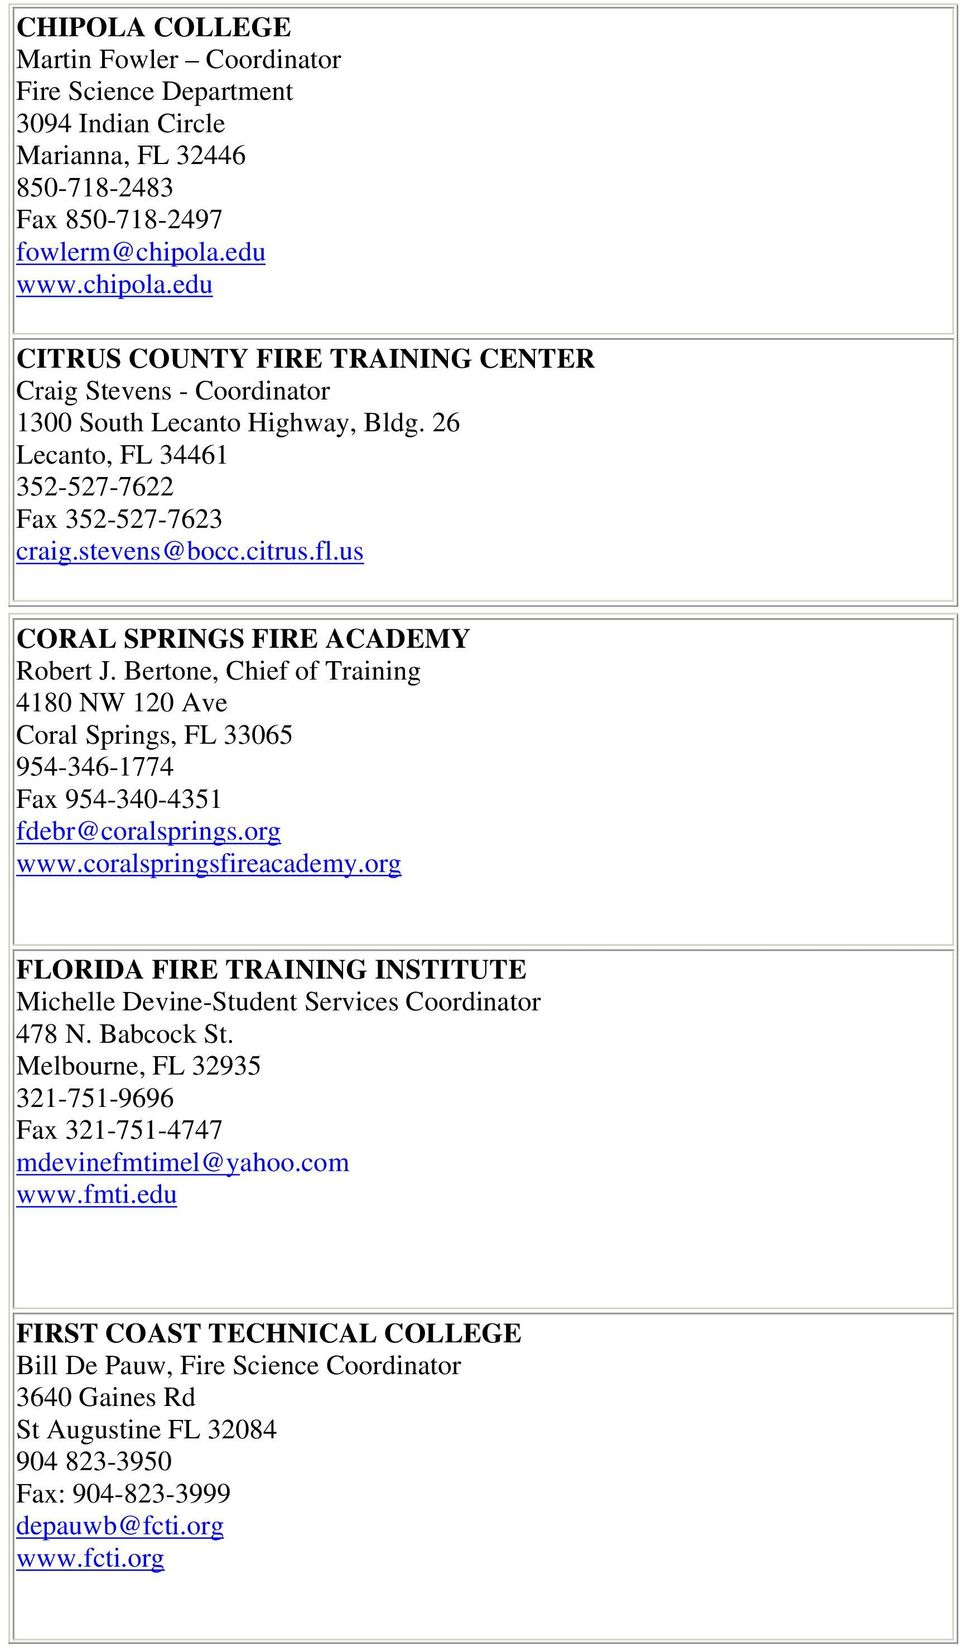 us CORAL SPRINGS FIRE ACADEMY Robert J. Bertone, Chief of Training 4180 NW 120 Ave Coral Springs, FL 33065 954-346-1774 Fax 954-340-4351 fdebr@coralsprings.org www.coralspringsfireacademy.